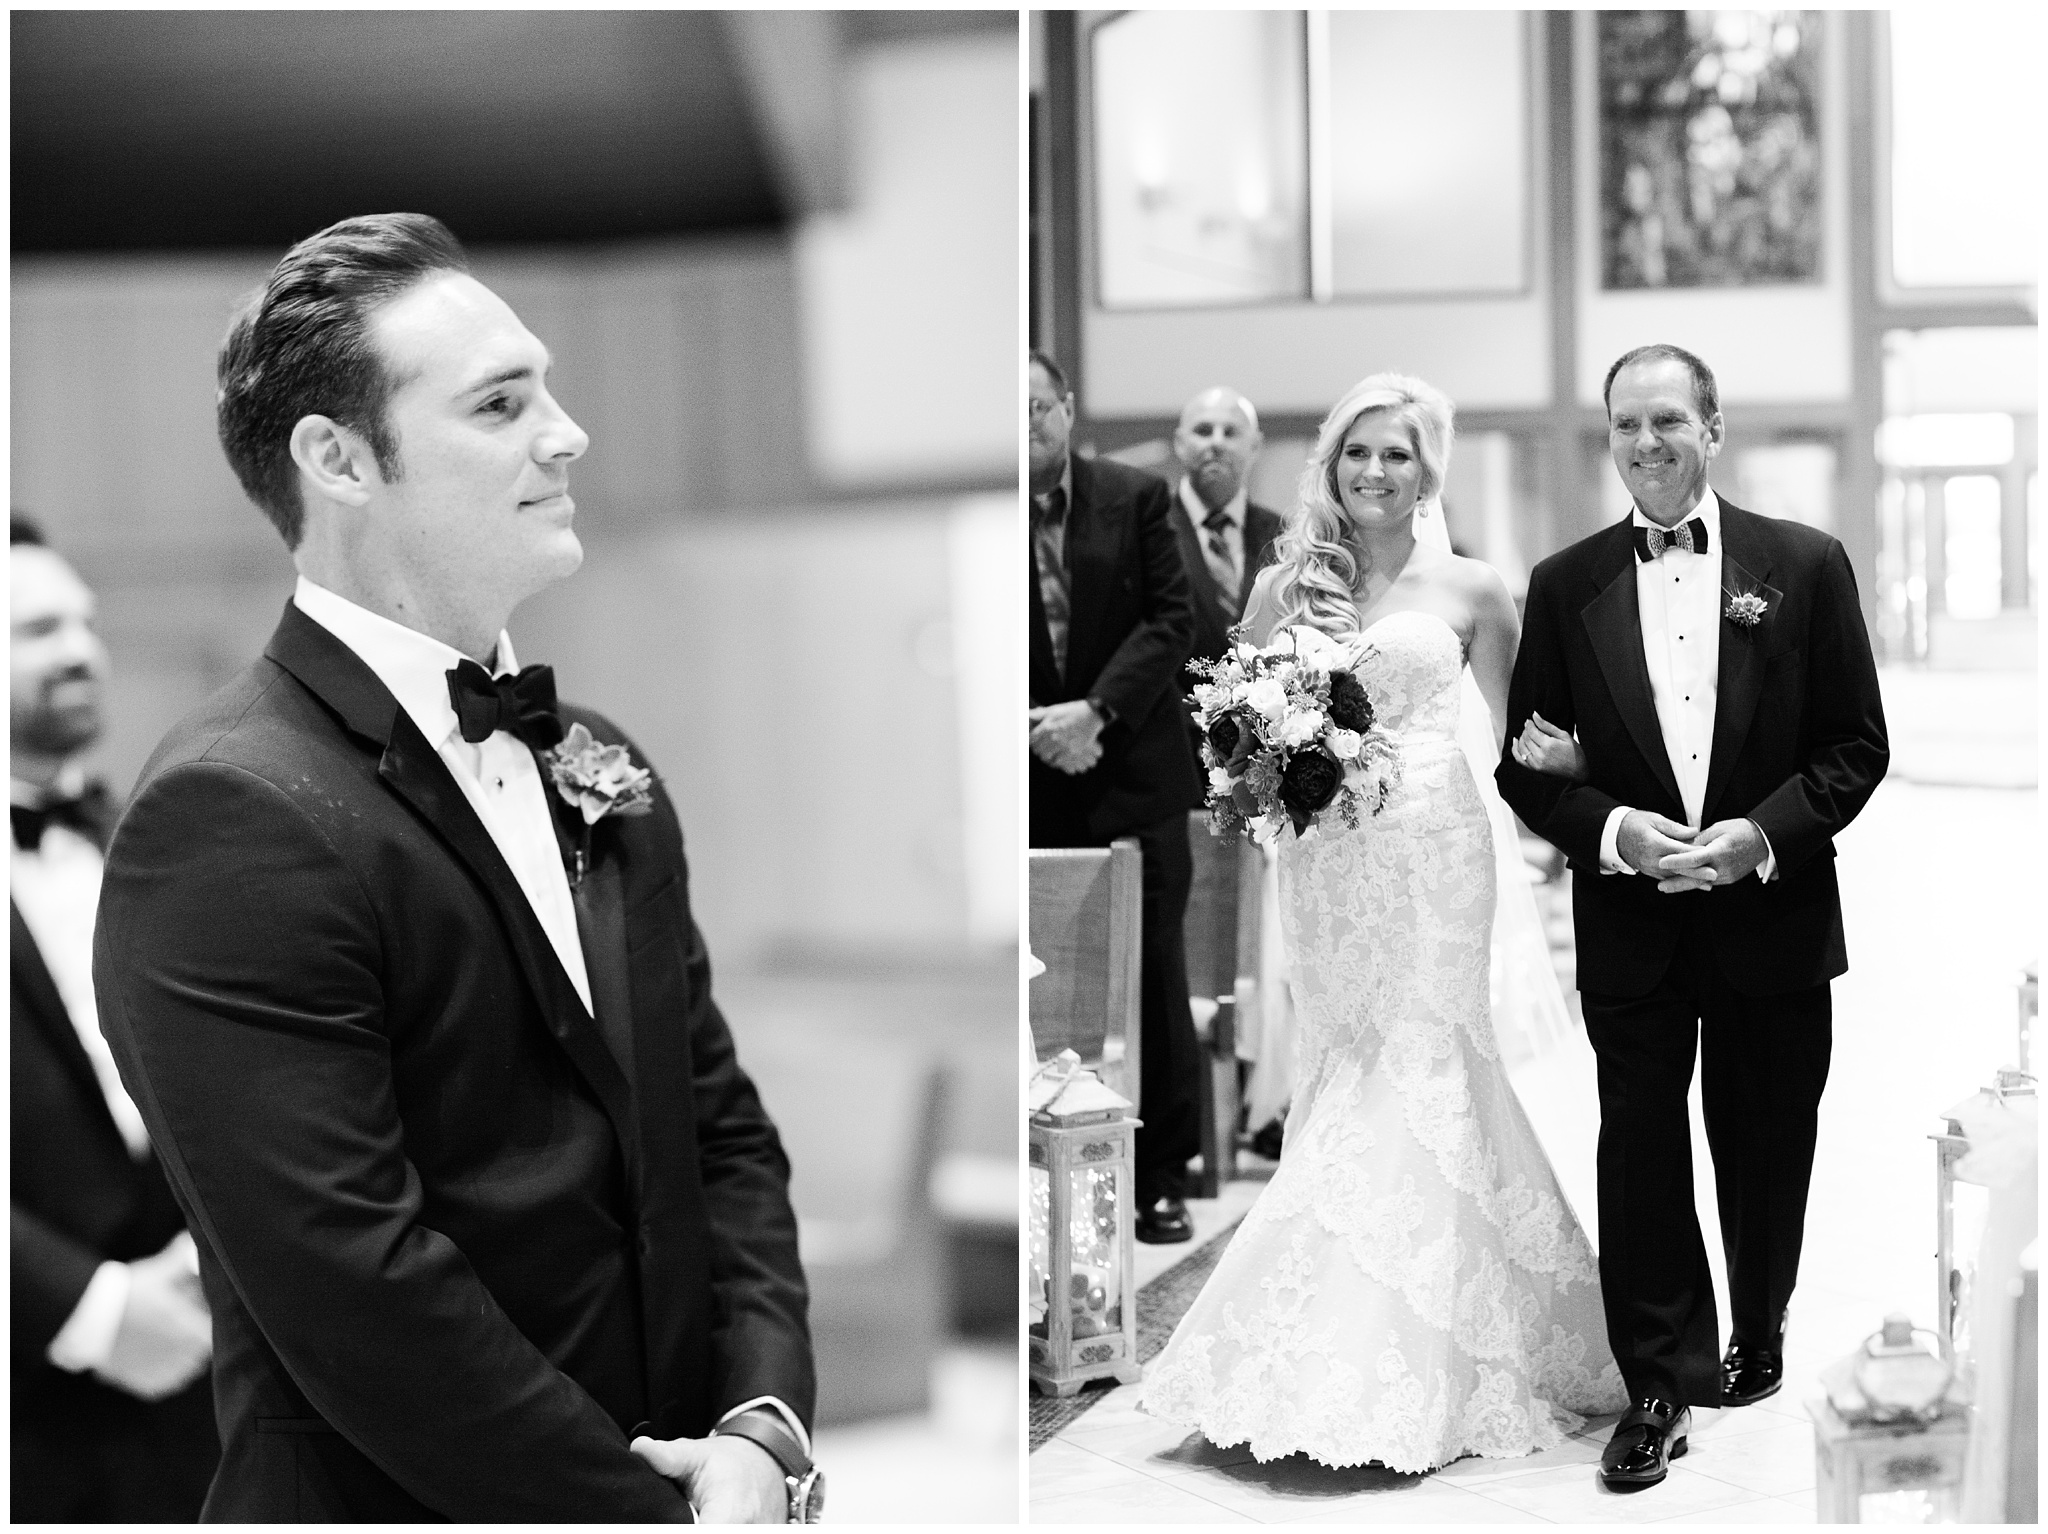 RebeccaHaleyPhotography_BarringtonPhotographer_ChicagoPhotographer_ChicagoWedding_0020.jpg